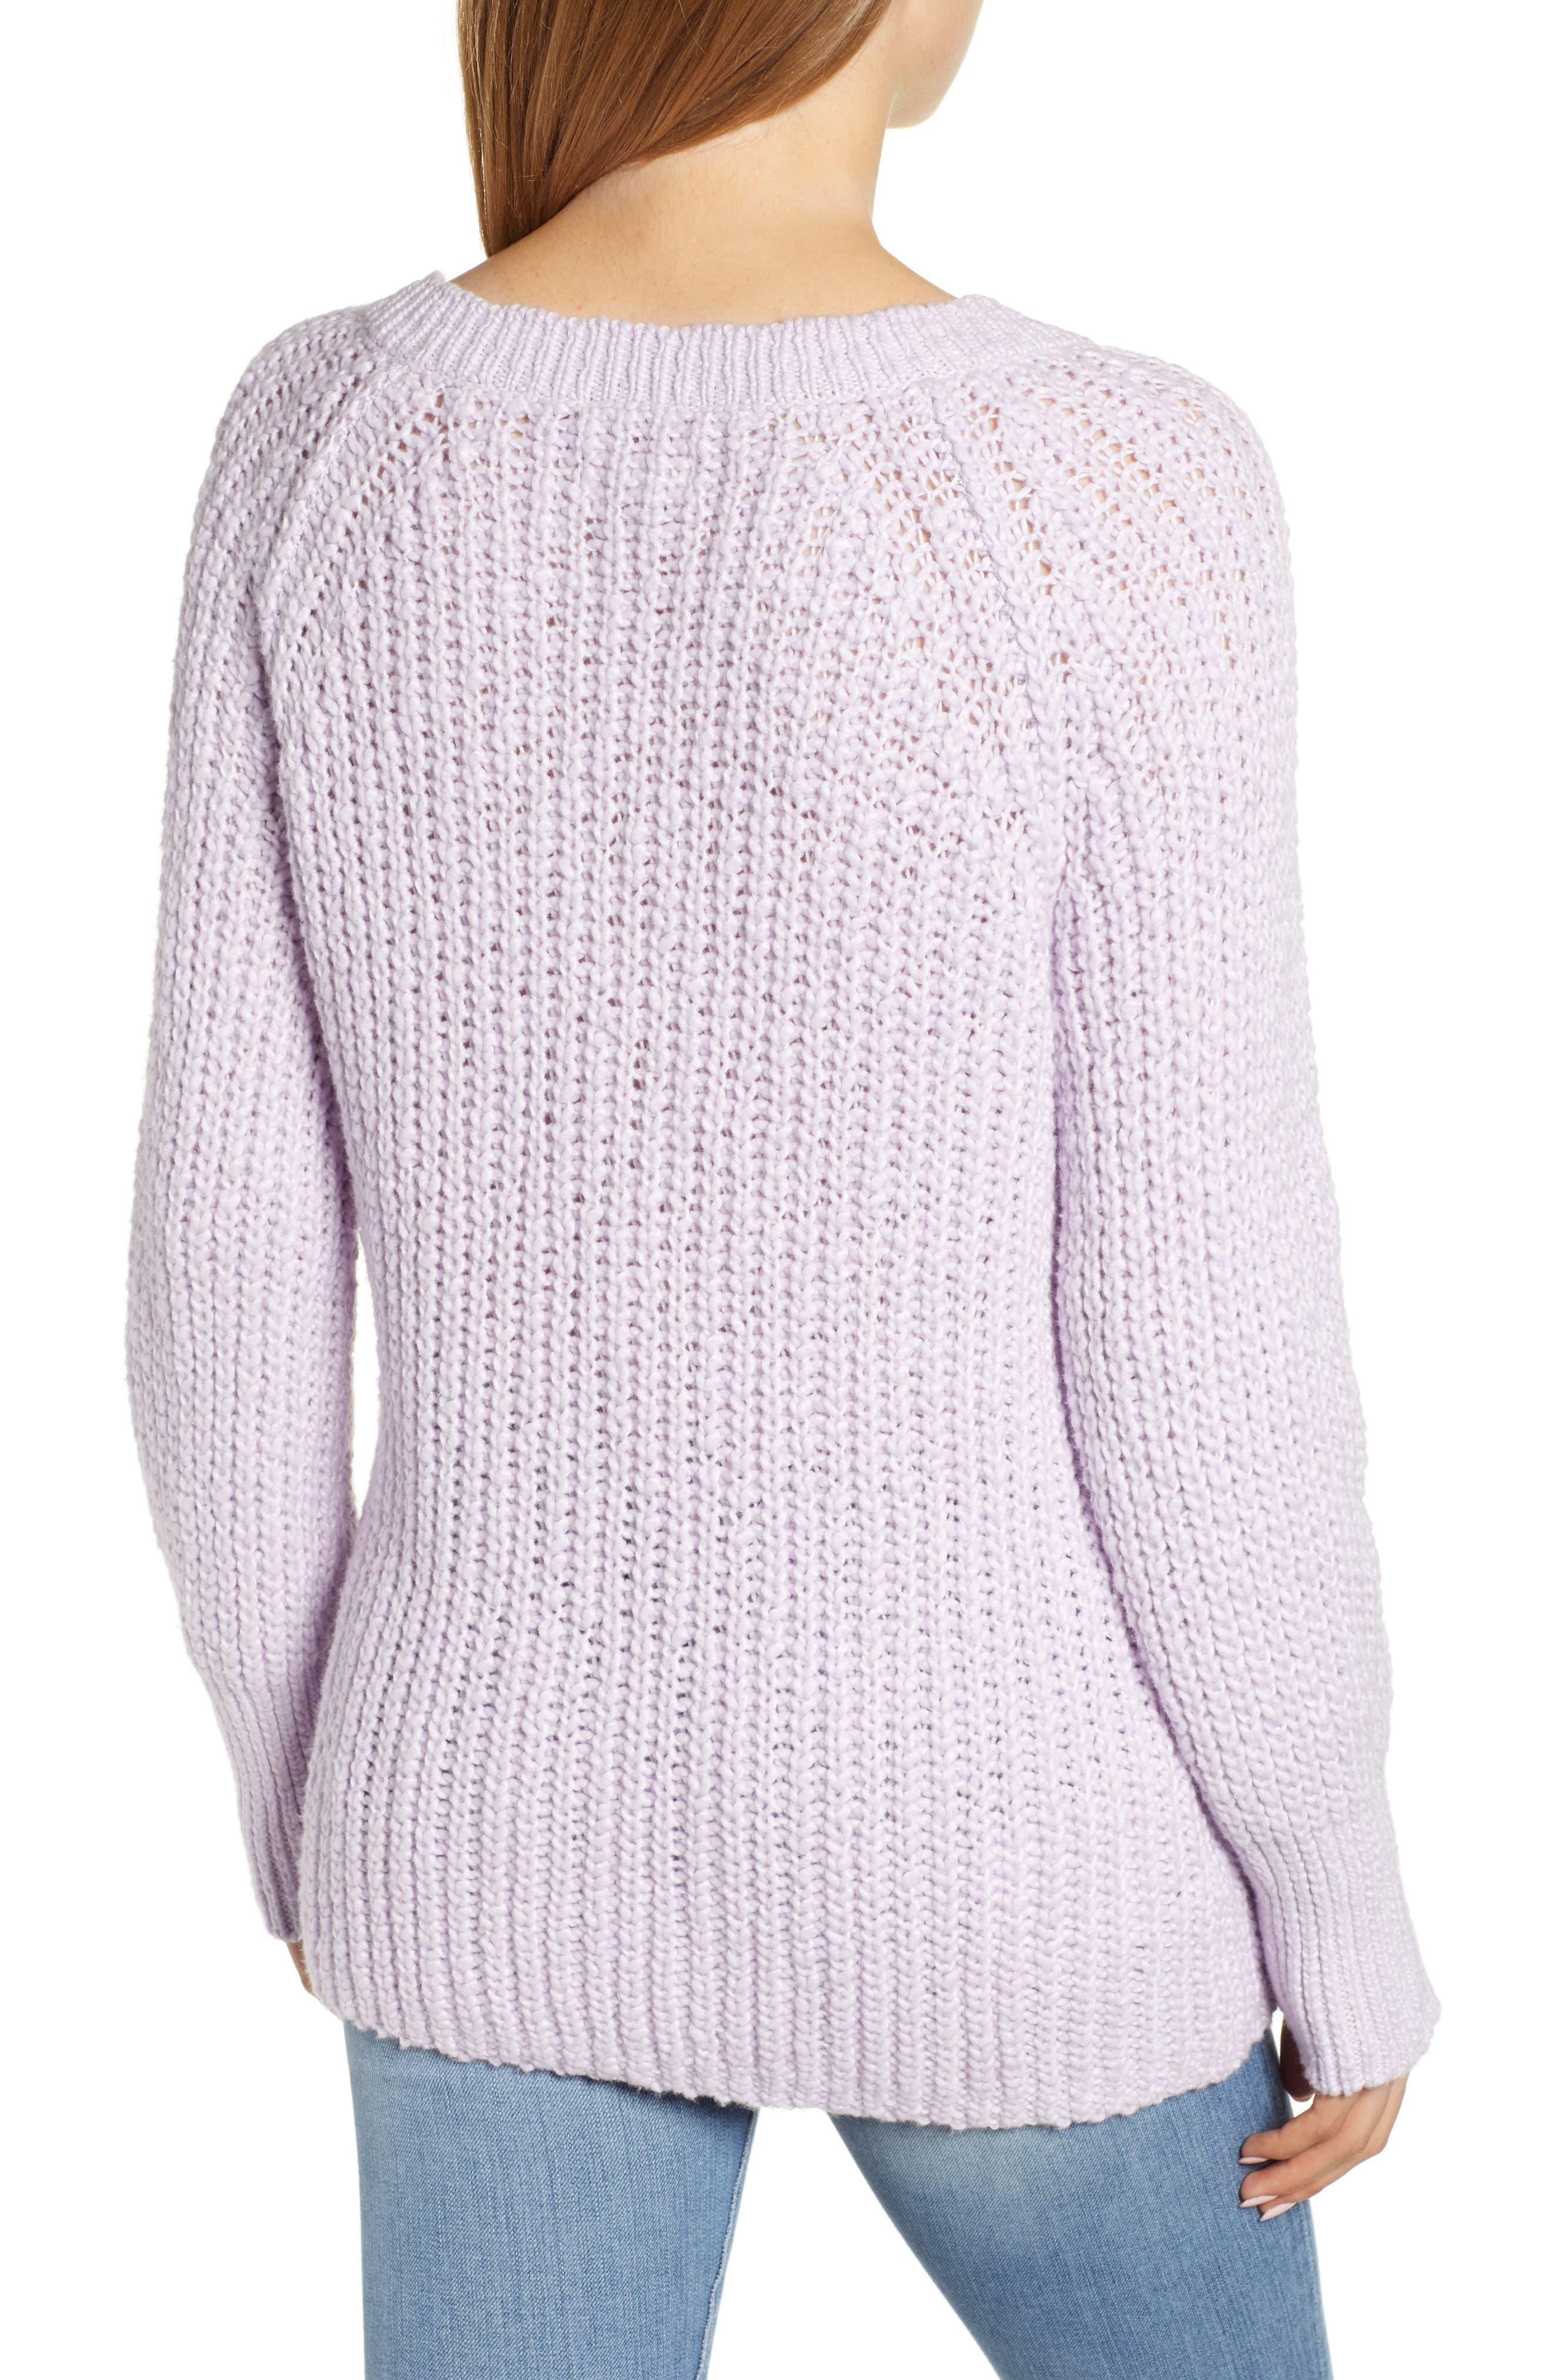 Cozystitch V-Neck Sweater,                             Alternate thumbnail 2, color,                             LILAC